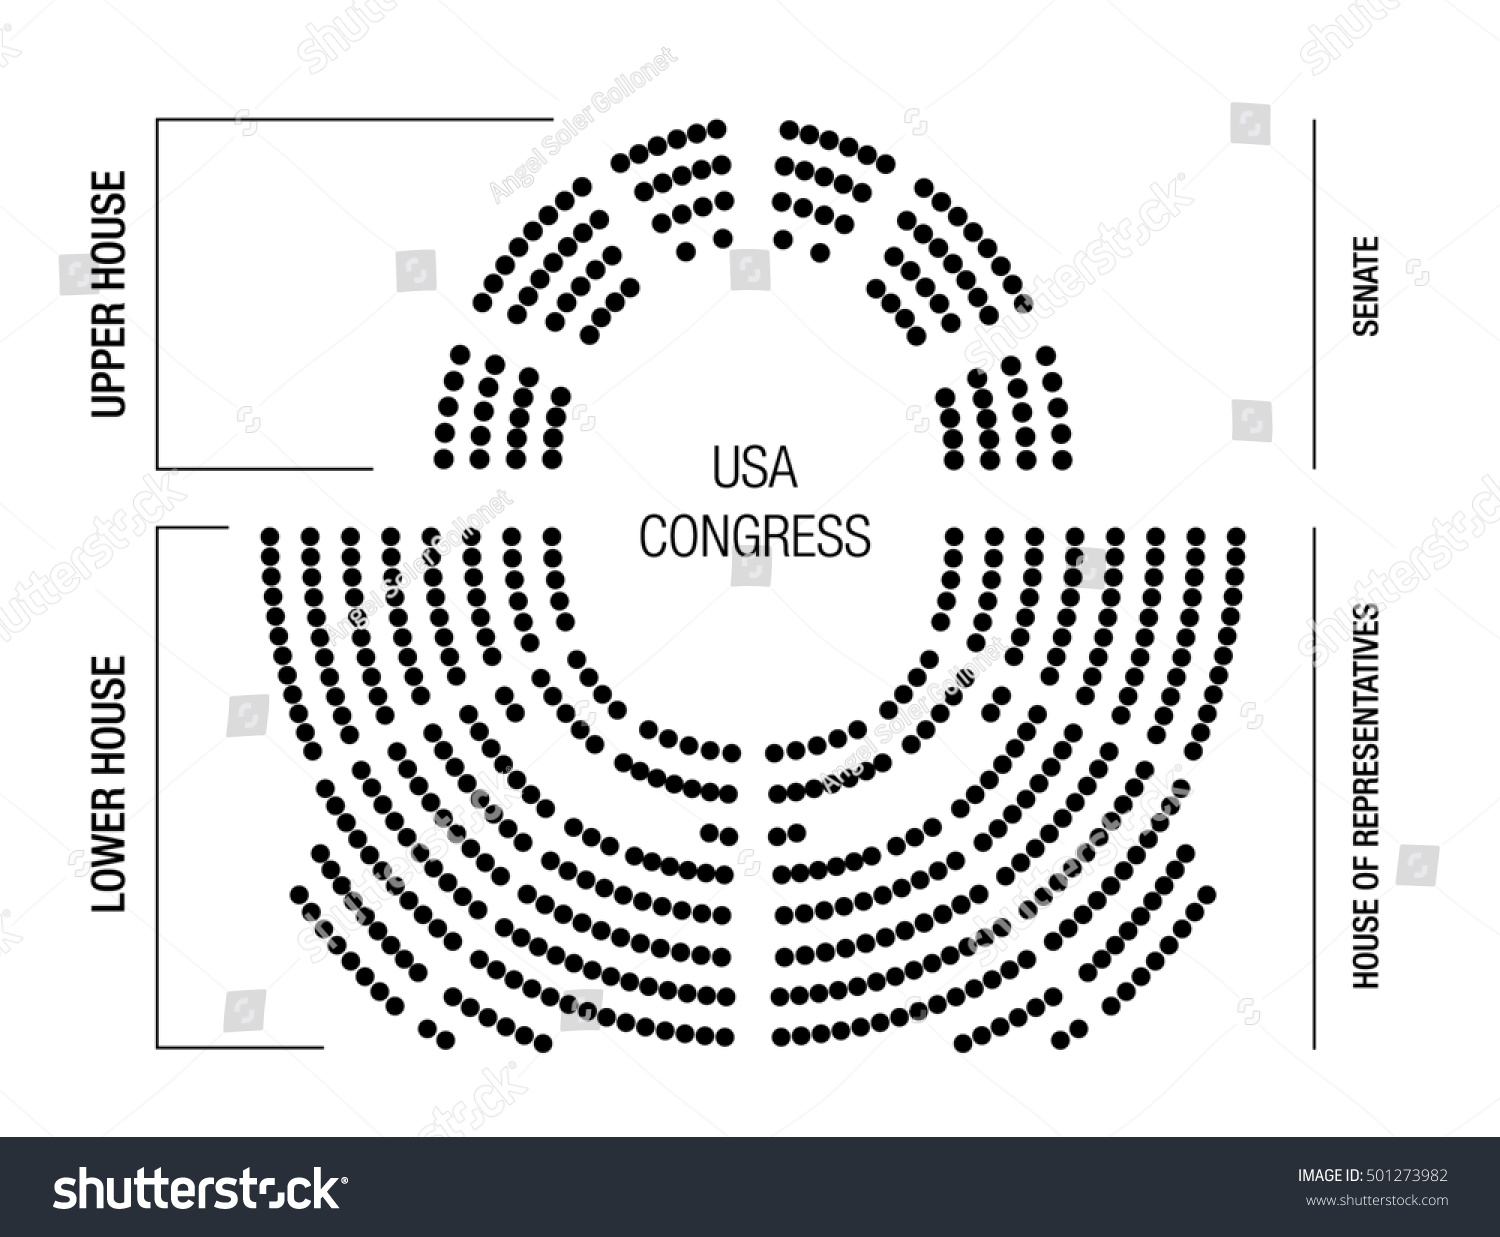 Editable Infographic Show Results Elections Seating Stock